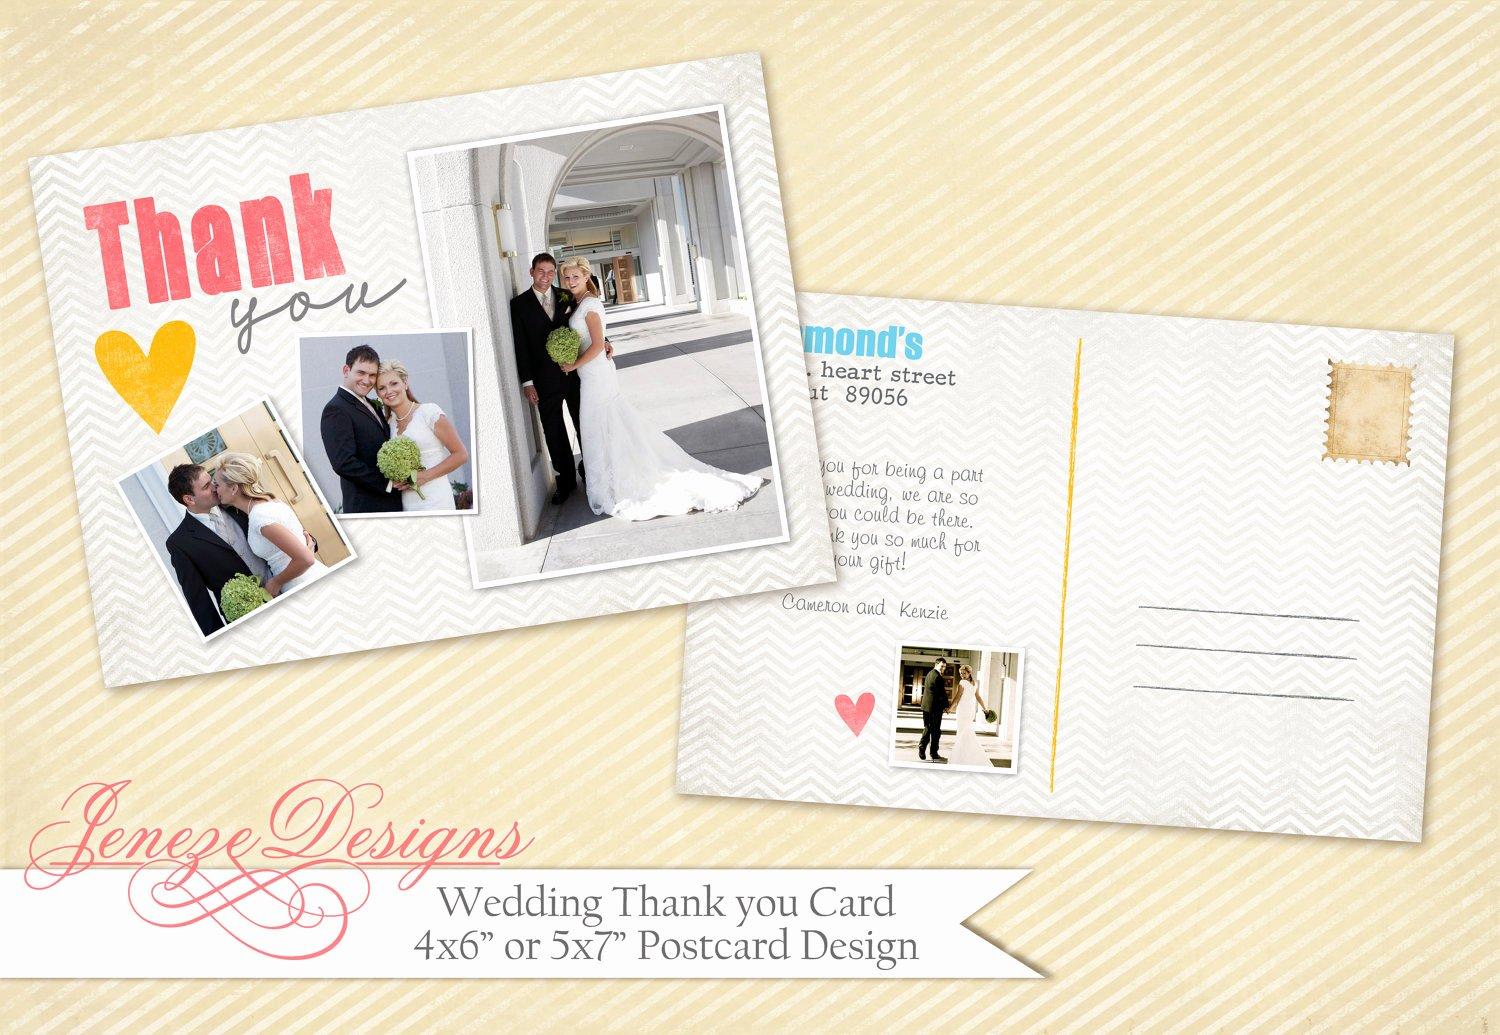 Wedding Thank You Card Shop Template Item Tc006 by Jeneze